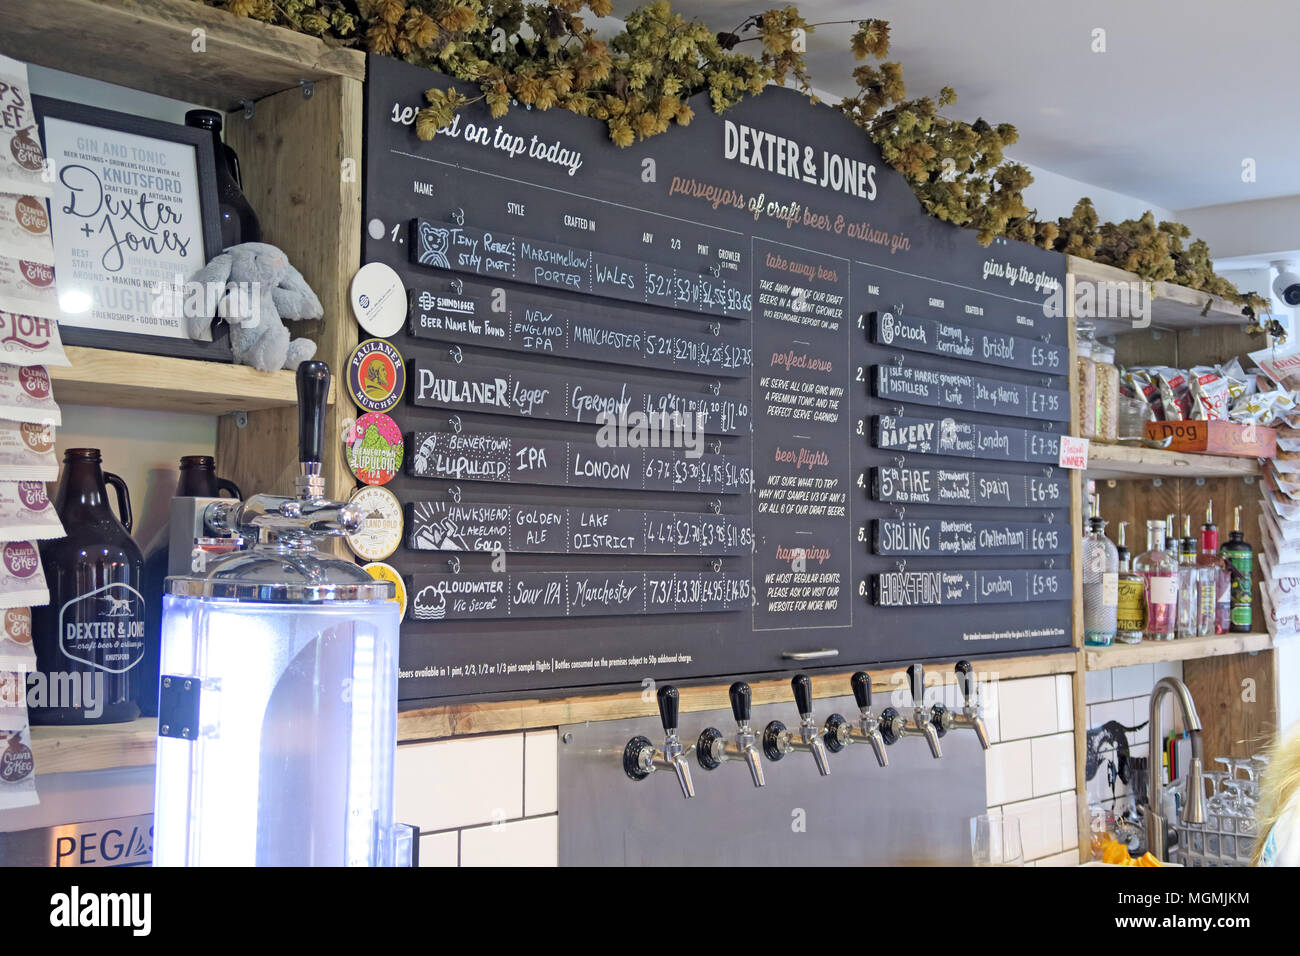 Dexter Jones Knutsford popup craft beer and Gin shop - Stock Image